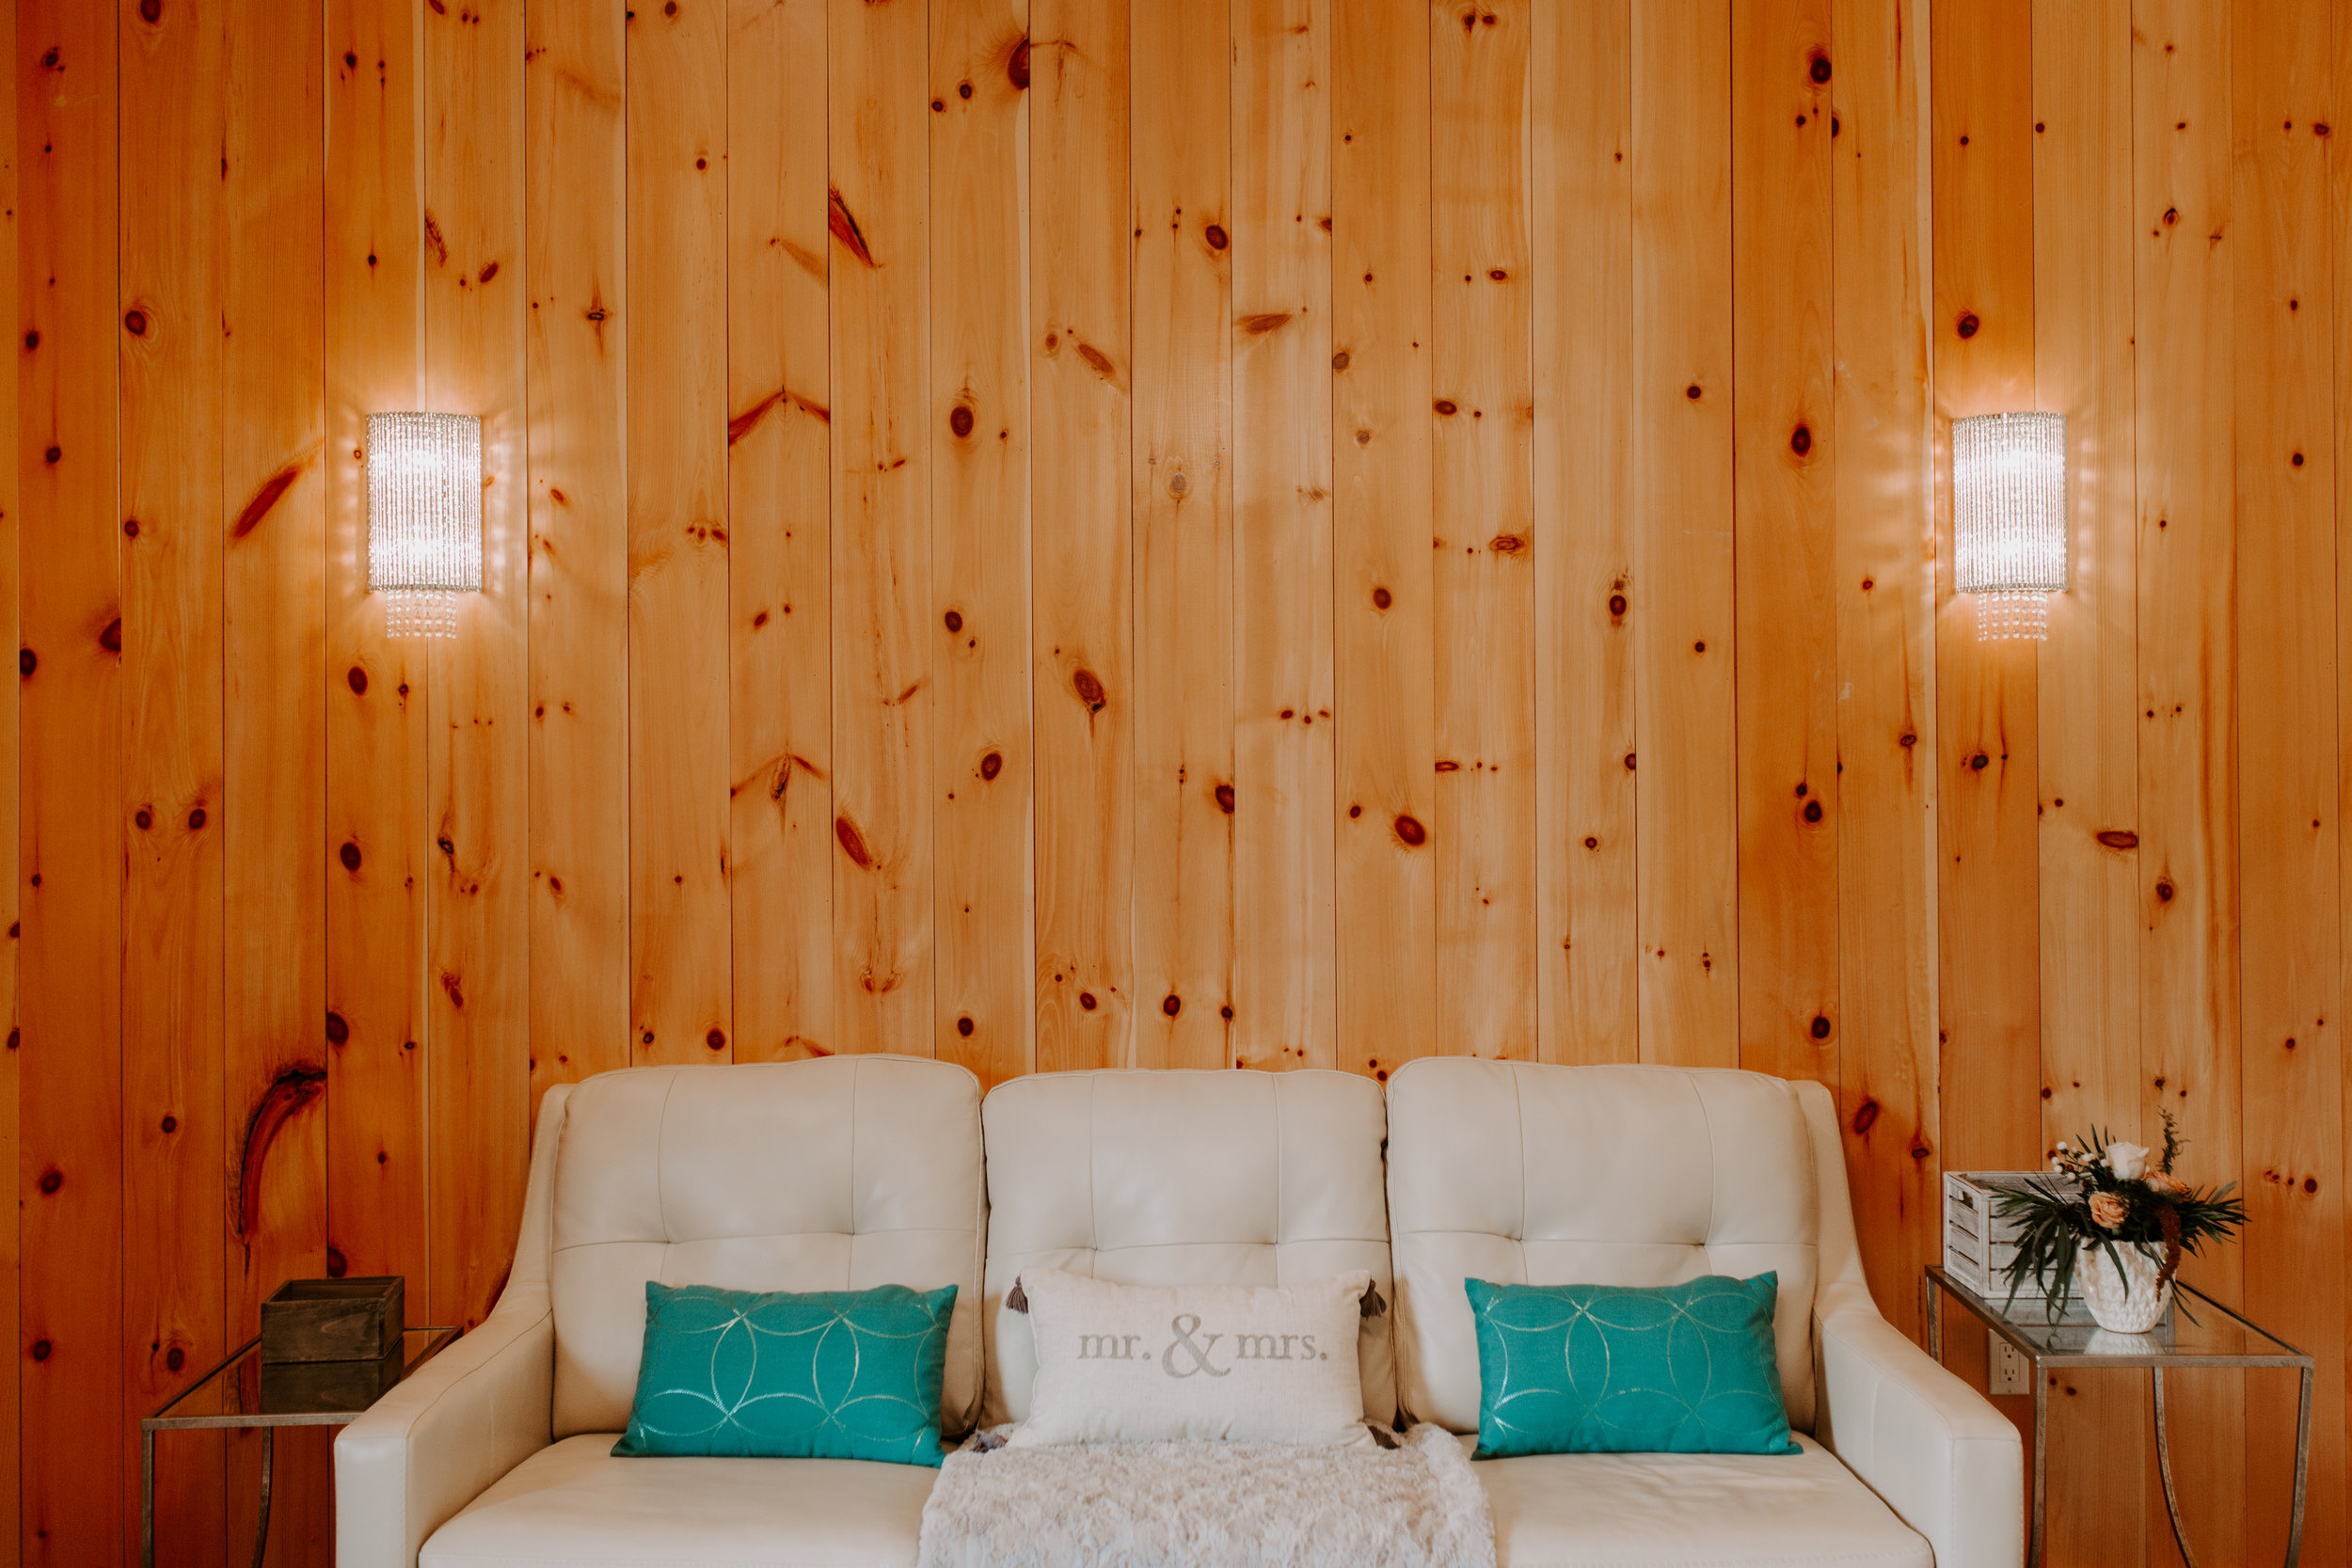 pine walls in bridal suite at Country Lane Lodge with white sofa and blue pillows sitting on couch that say Mr. and Mrs.